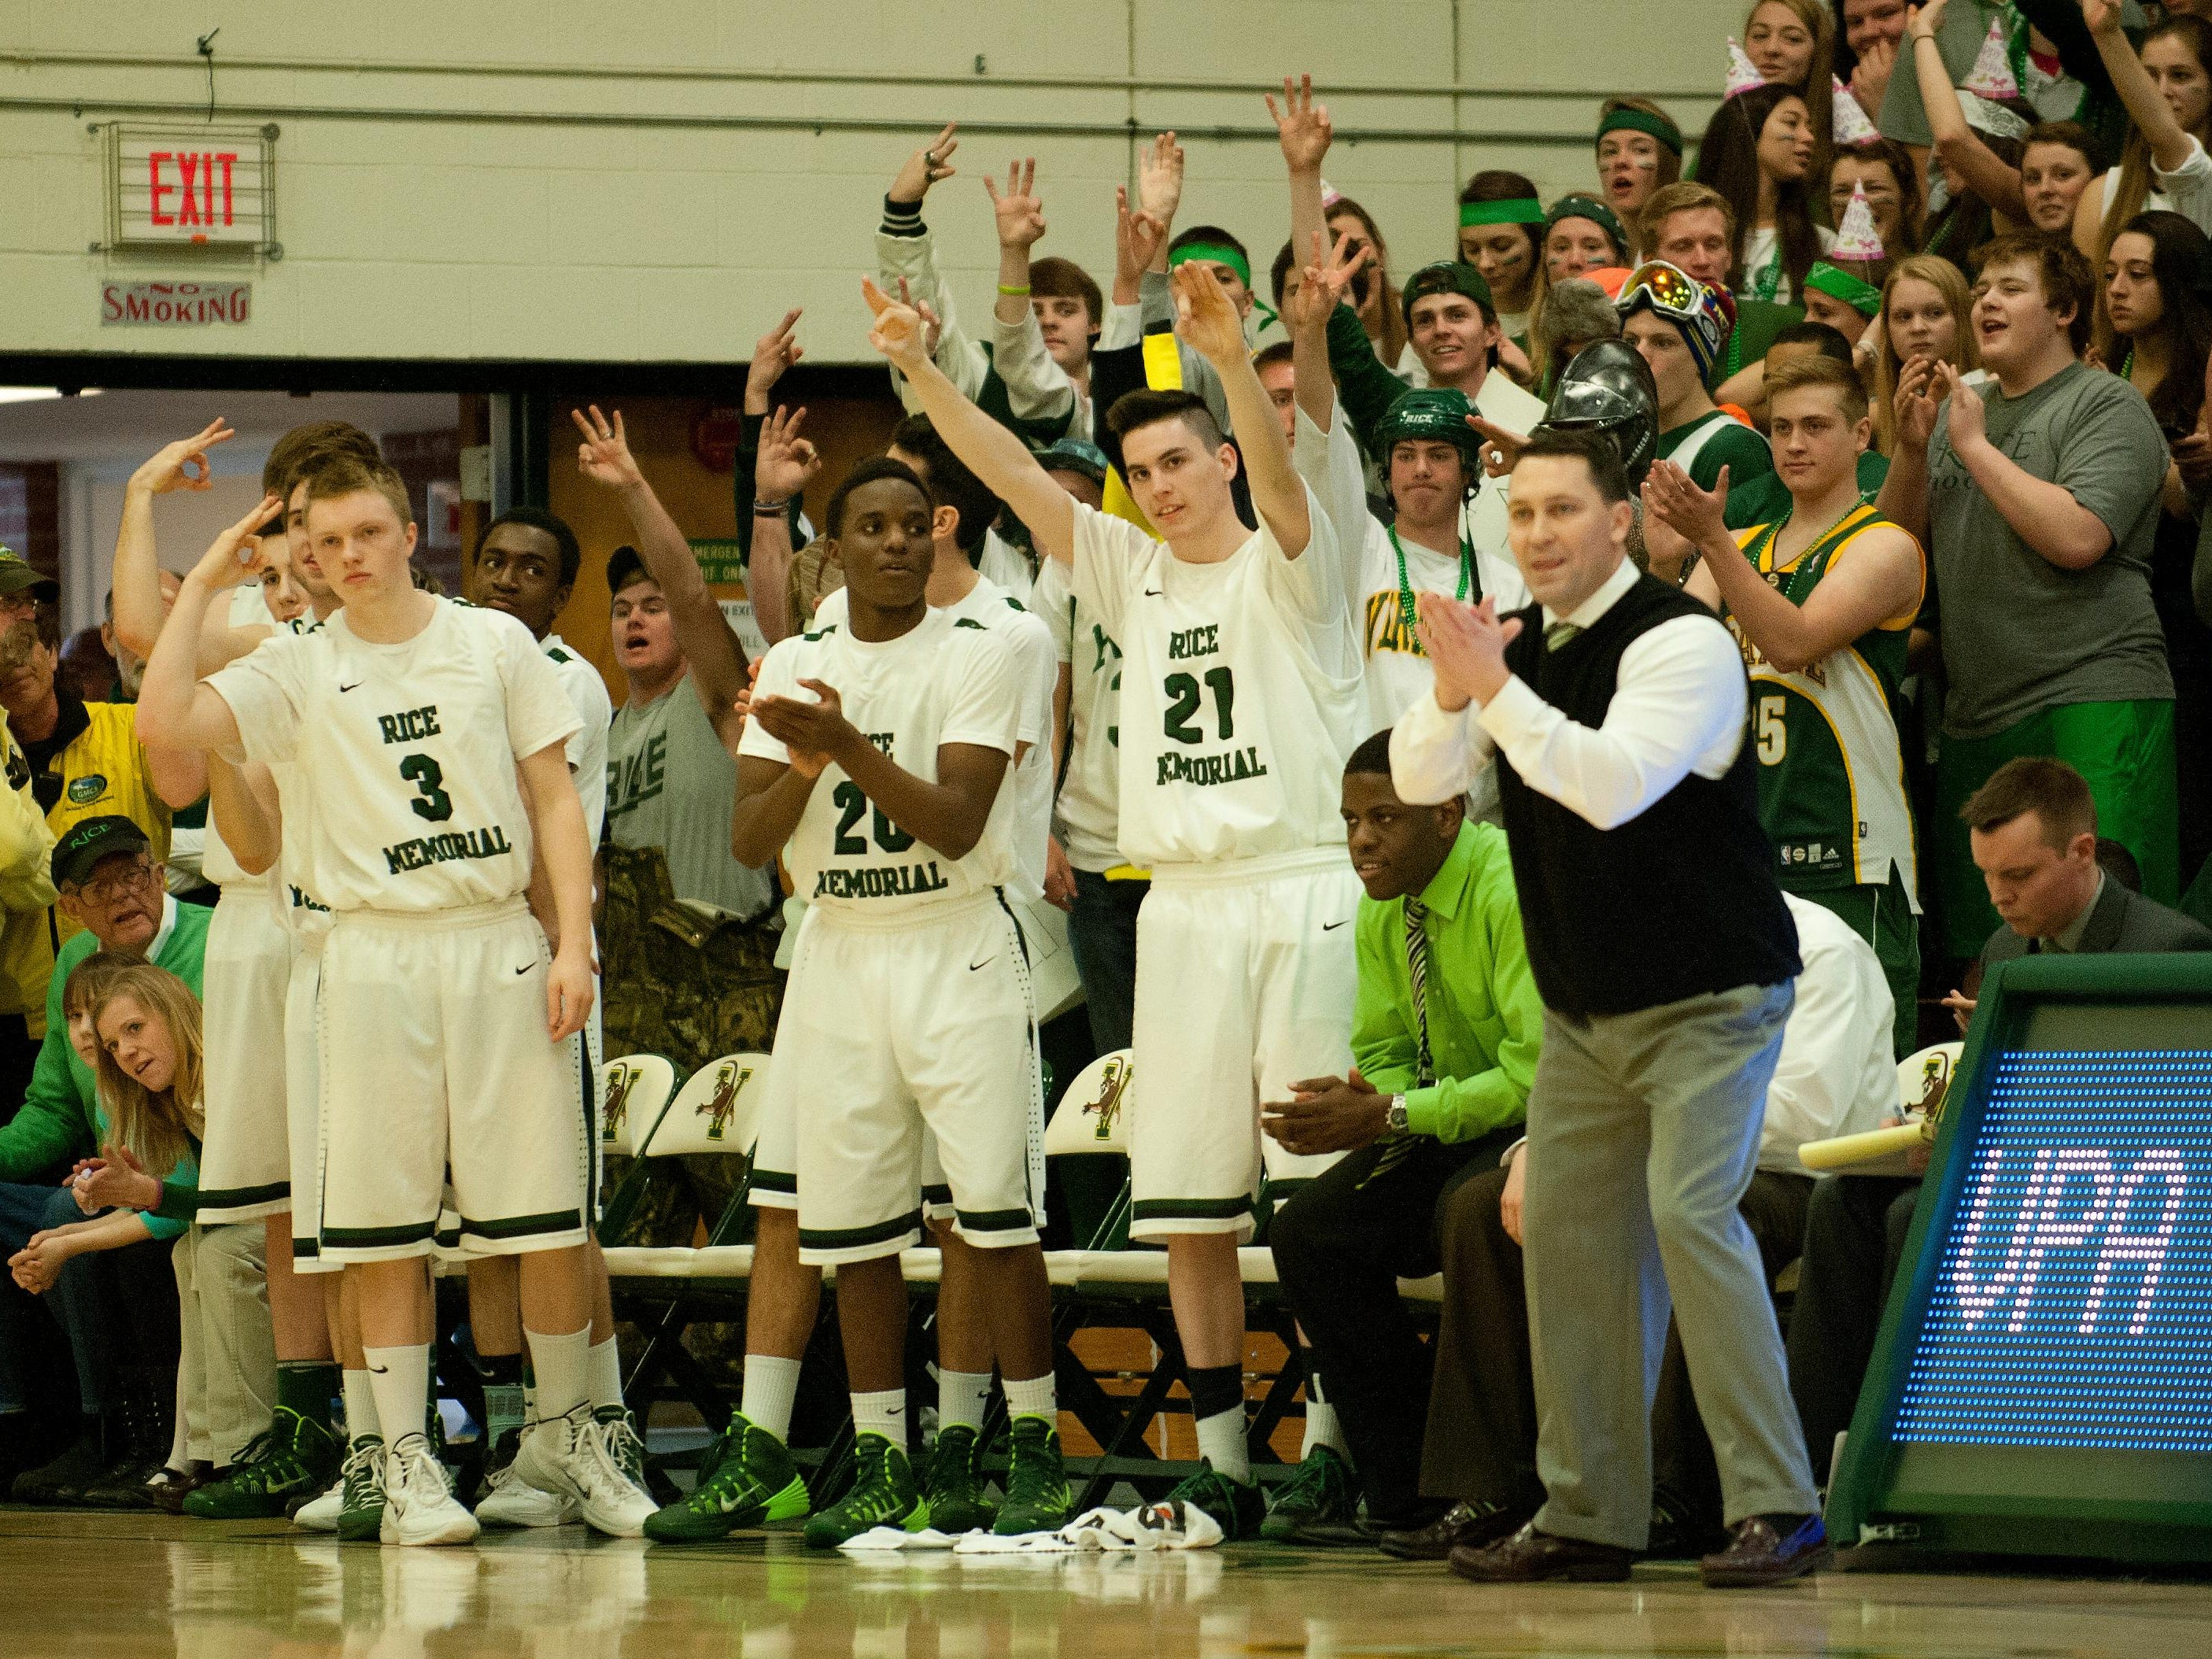 The Rice bench cheers for the team during the 2014 division I boys basketball championship game between the Mount Mansfield Cougars and the Rice Green Knights at Patrick Gym on Saturday afternoon March 8, 2014 in Burlington, Vermont. (BRIAN JENKINS, for the Free Press)